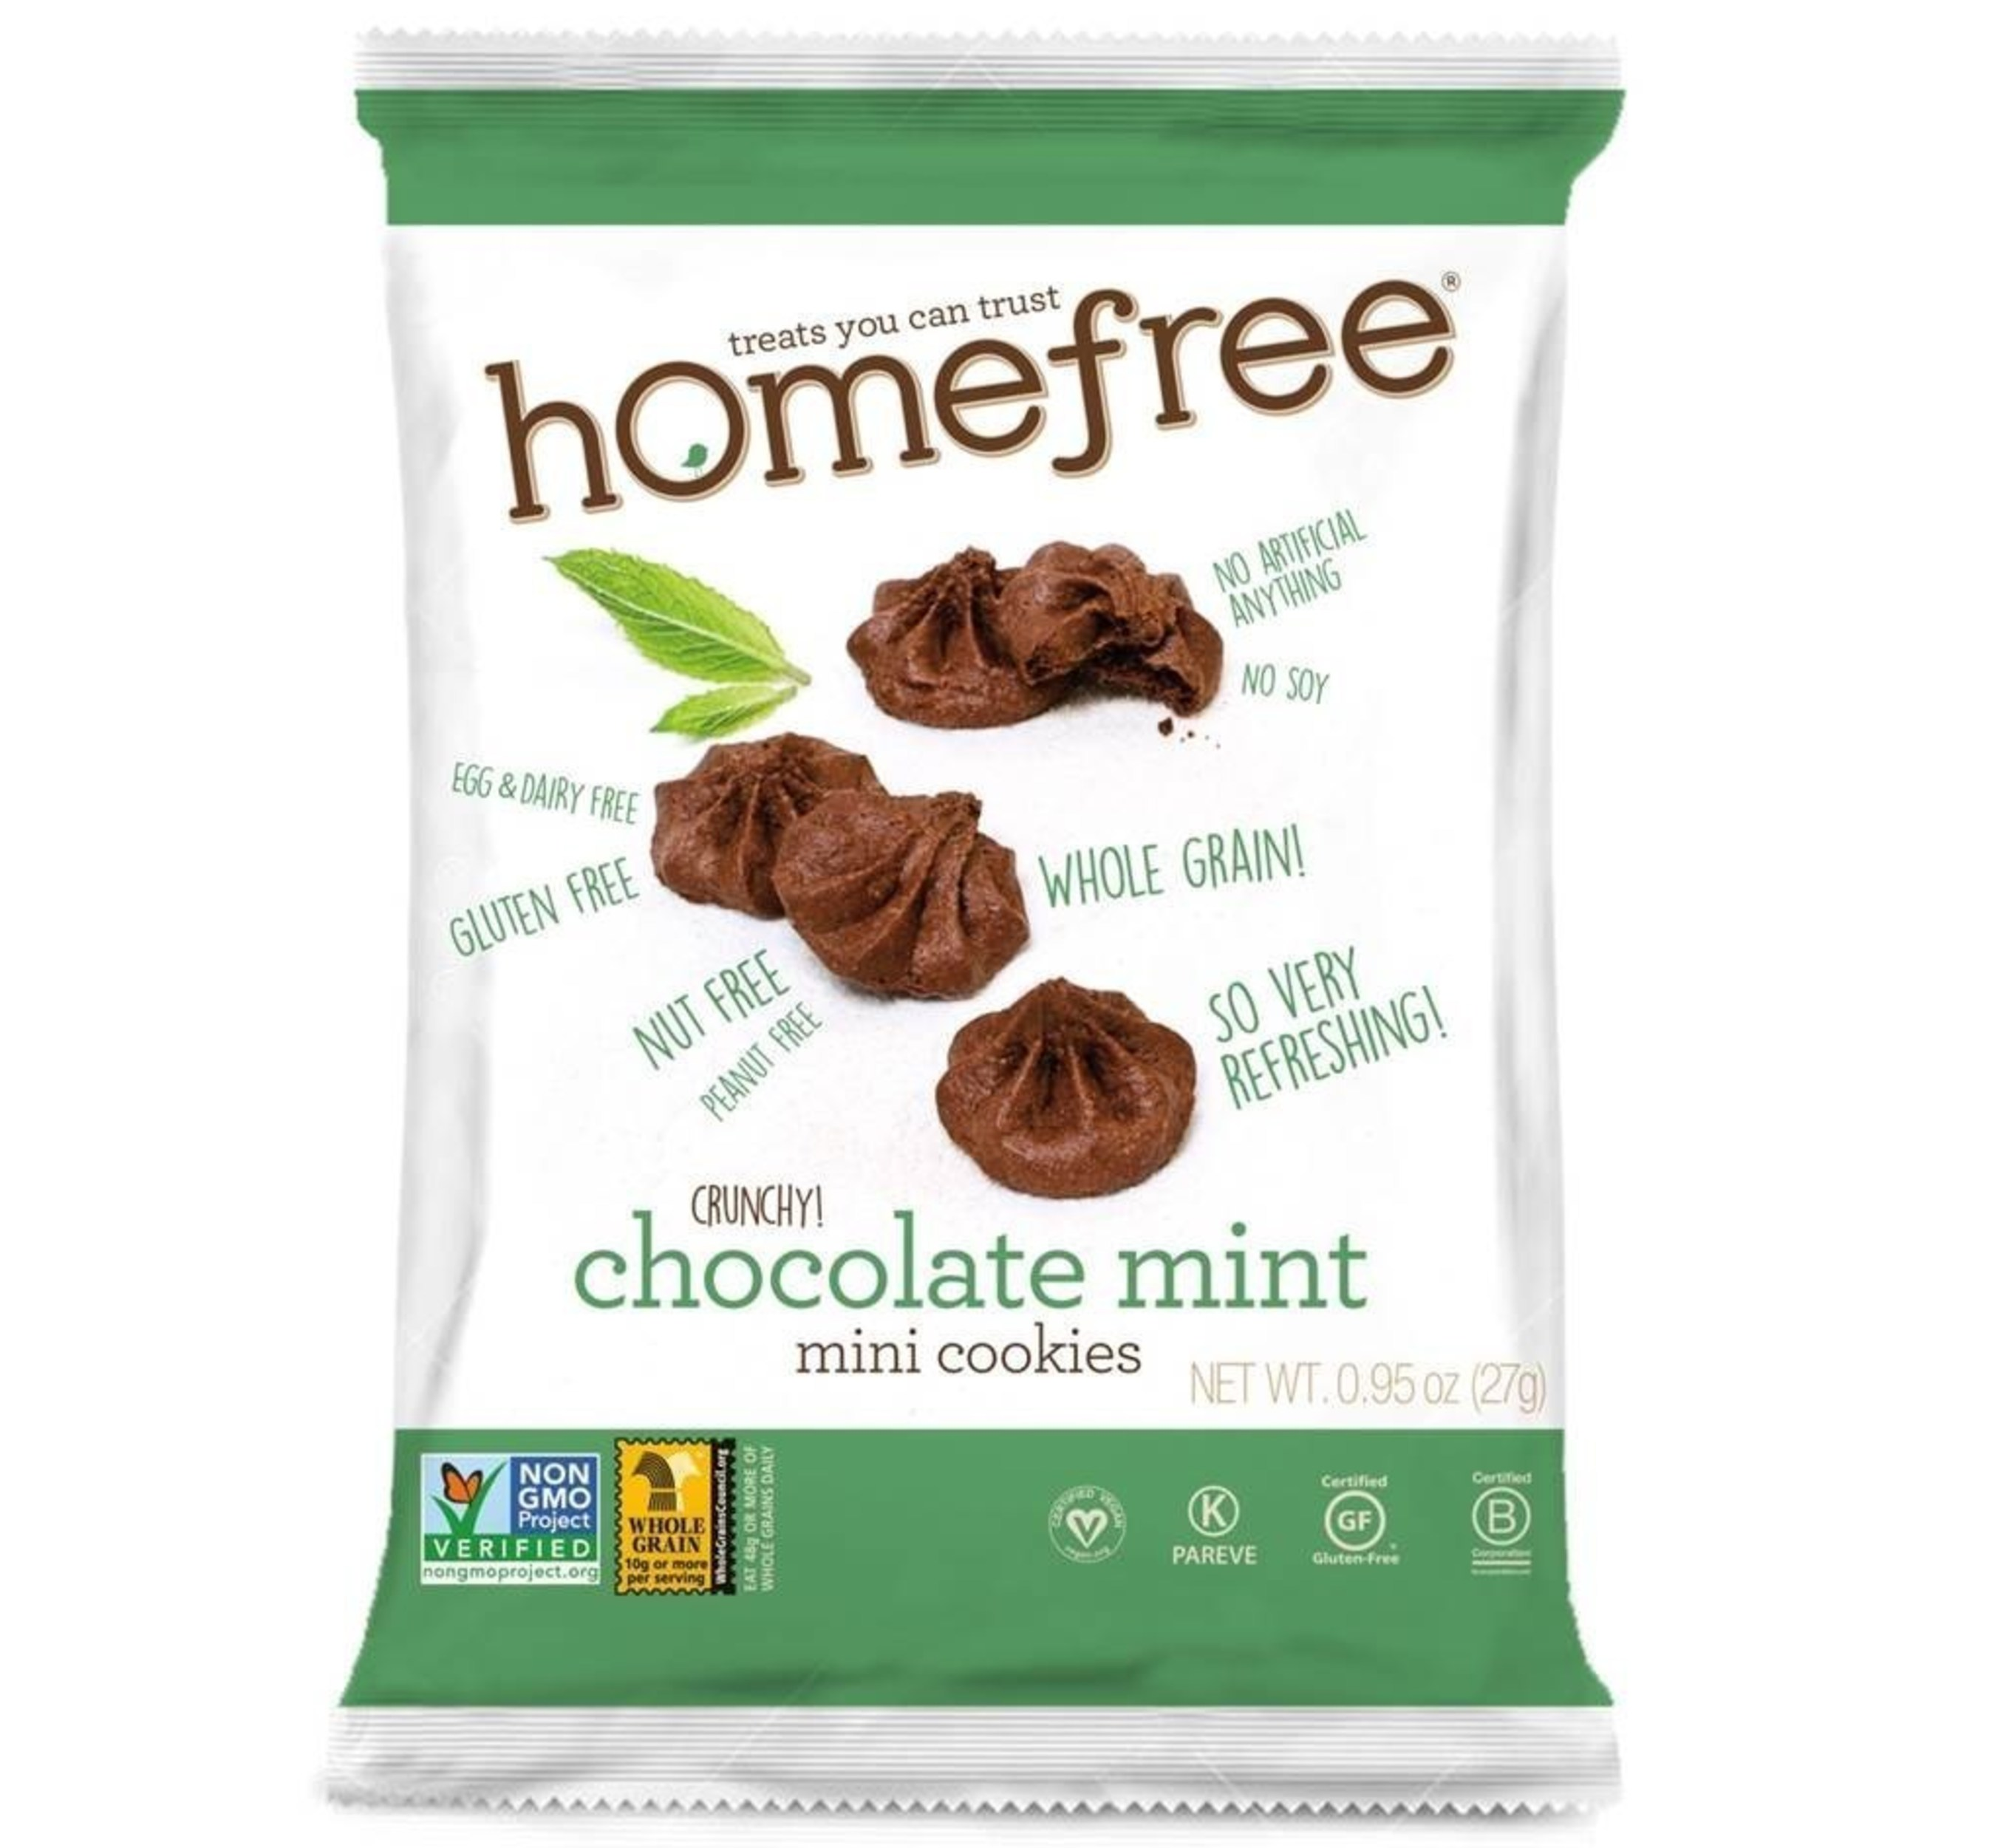 Homefree Announces Brand Refresh & 'Refreshing' New Cookies